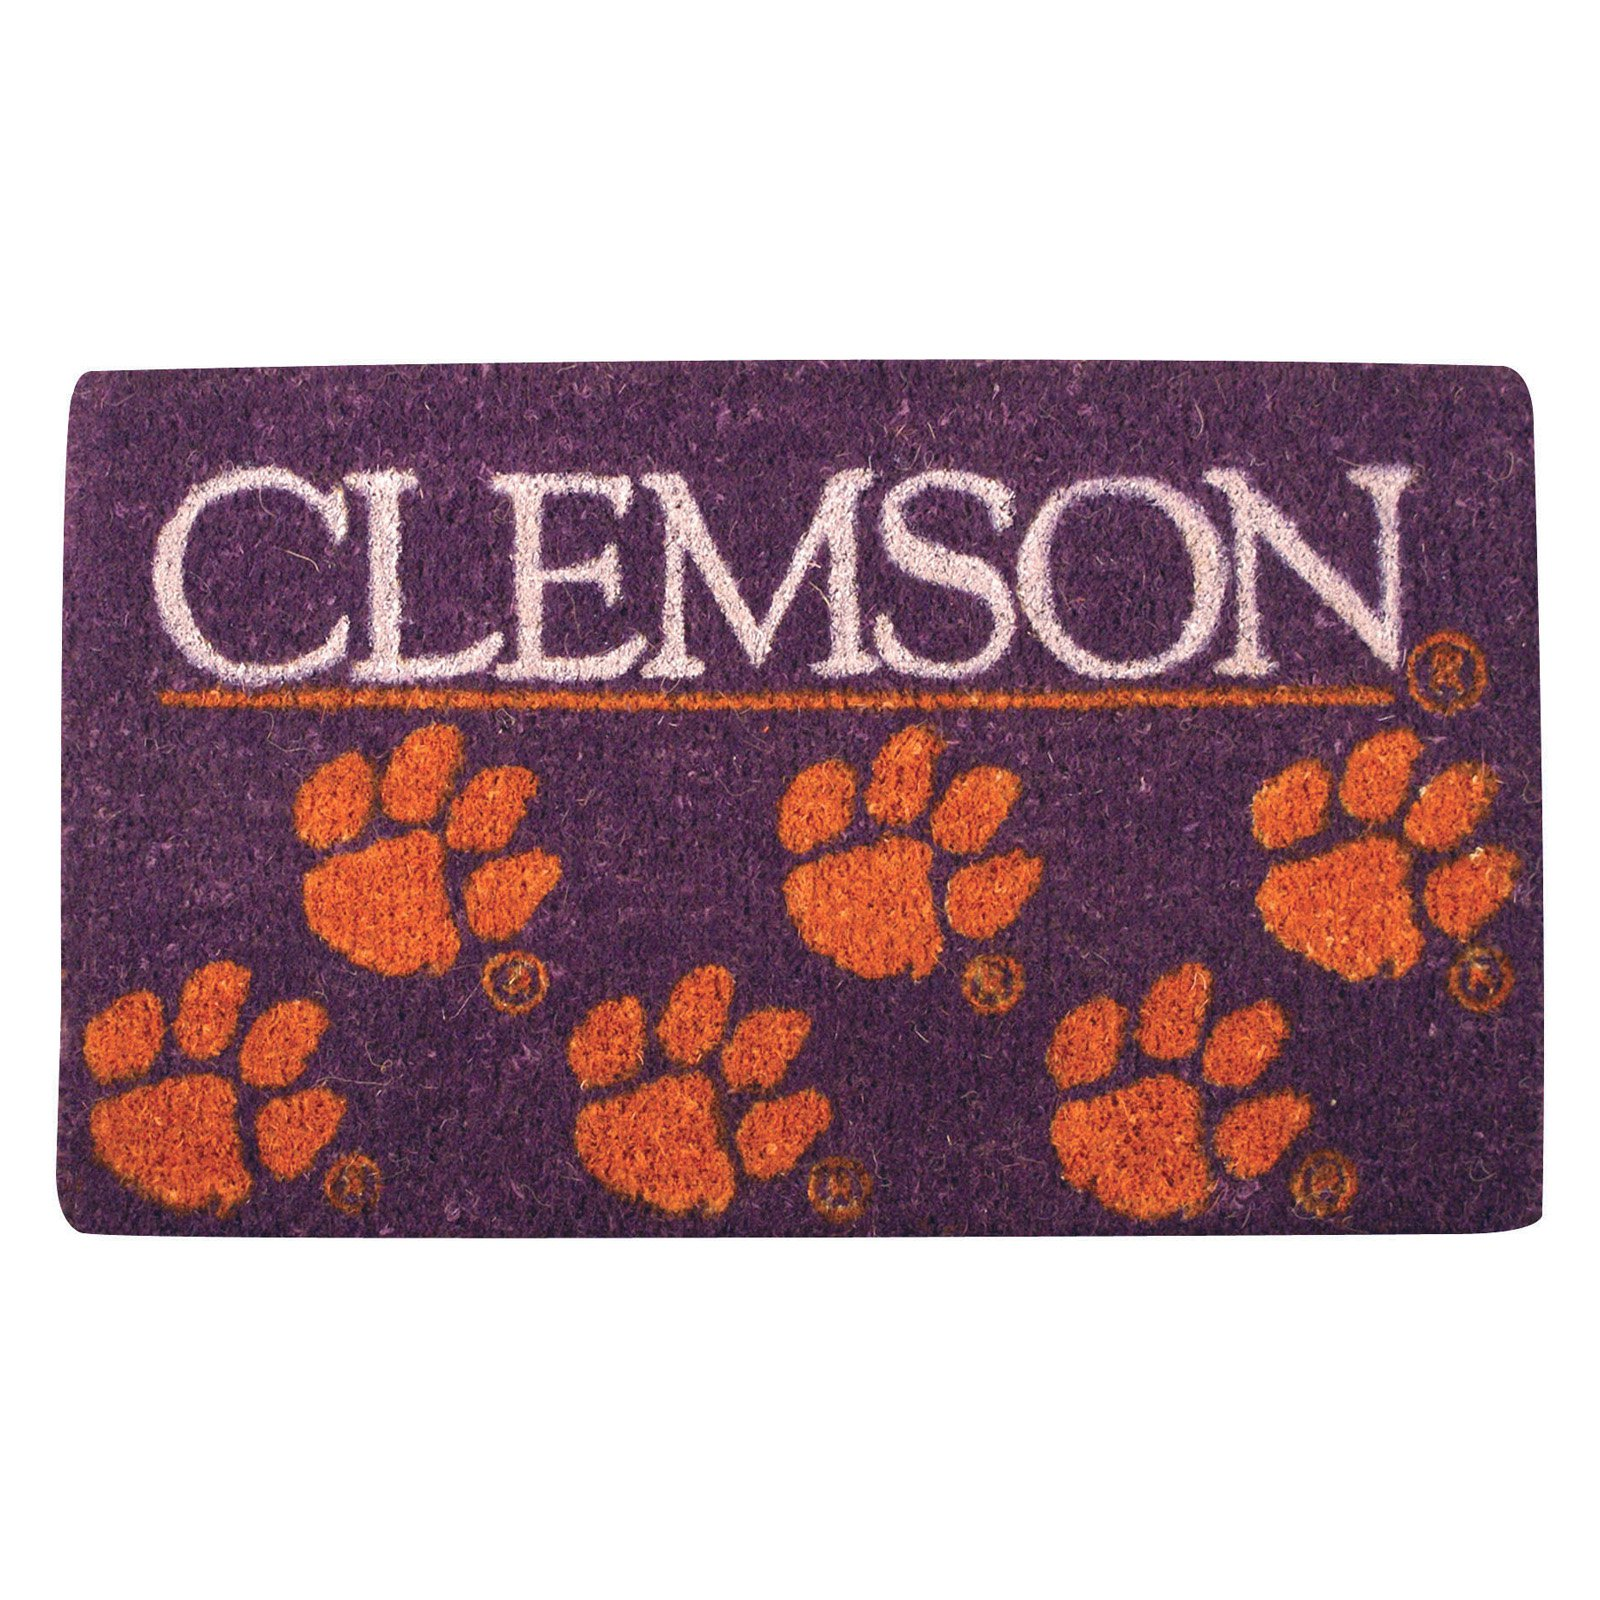 Team Sports America Collegiate Welcome Mat